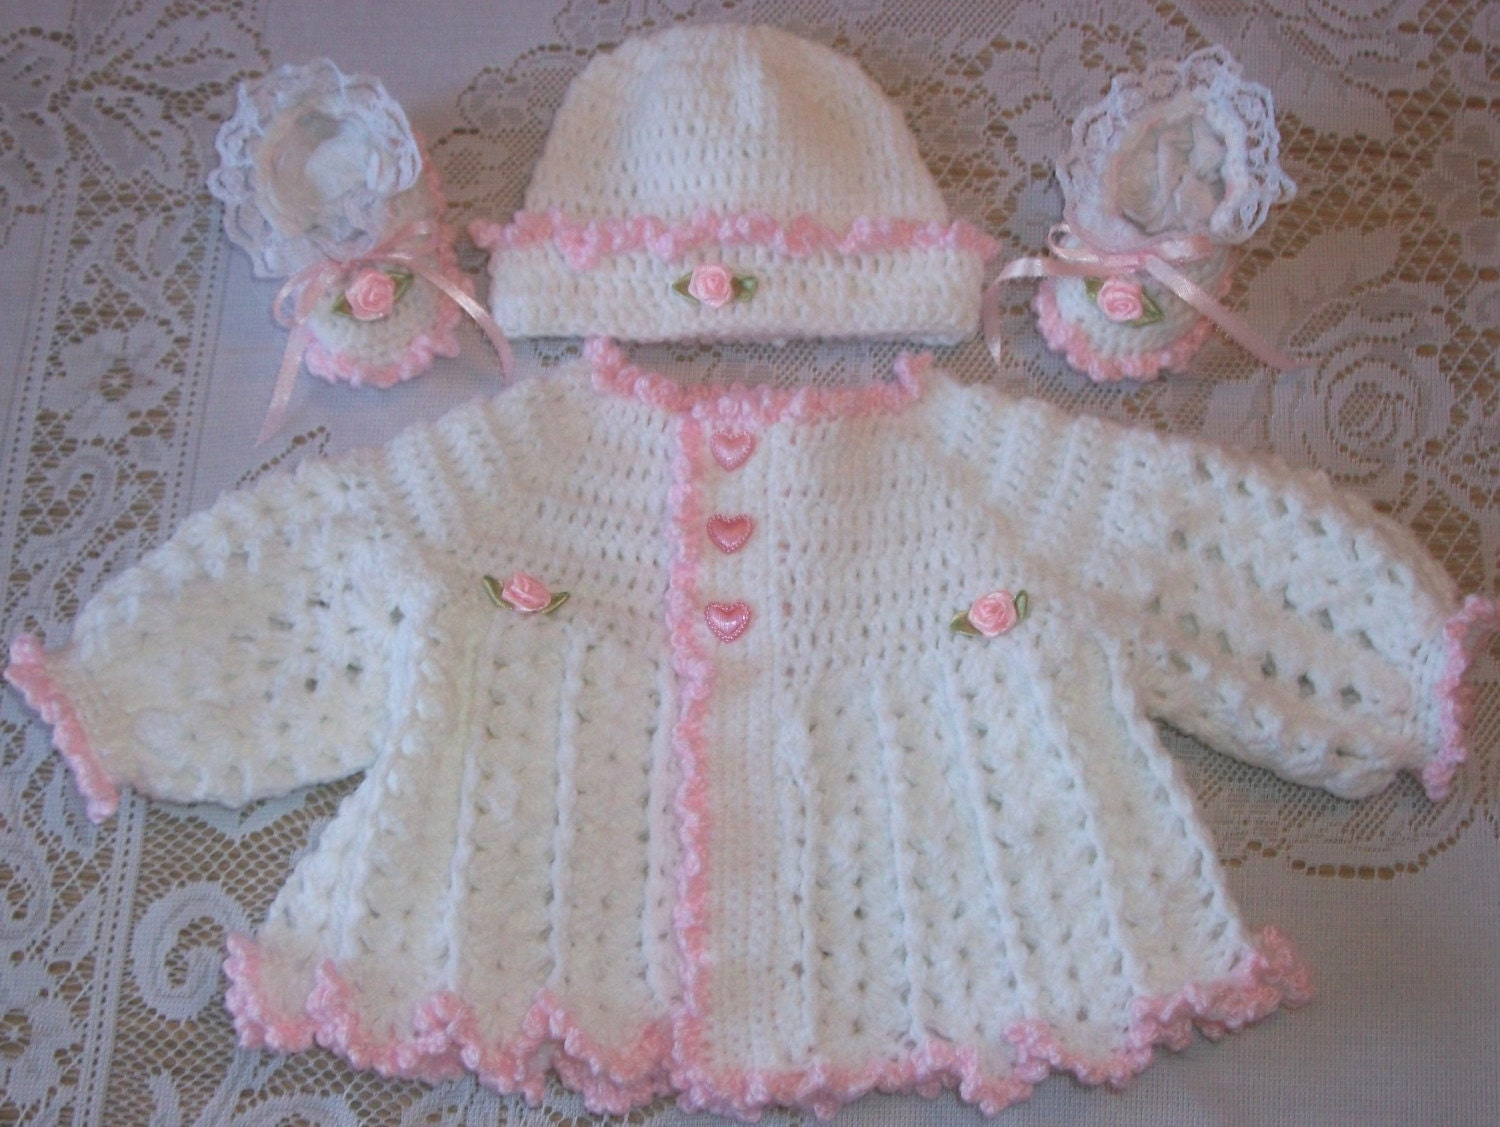 Crochet Baby Girl Cardigan Pattern Free : Crochet Baby Girl Pink and White Sweater by ...